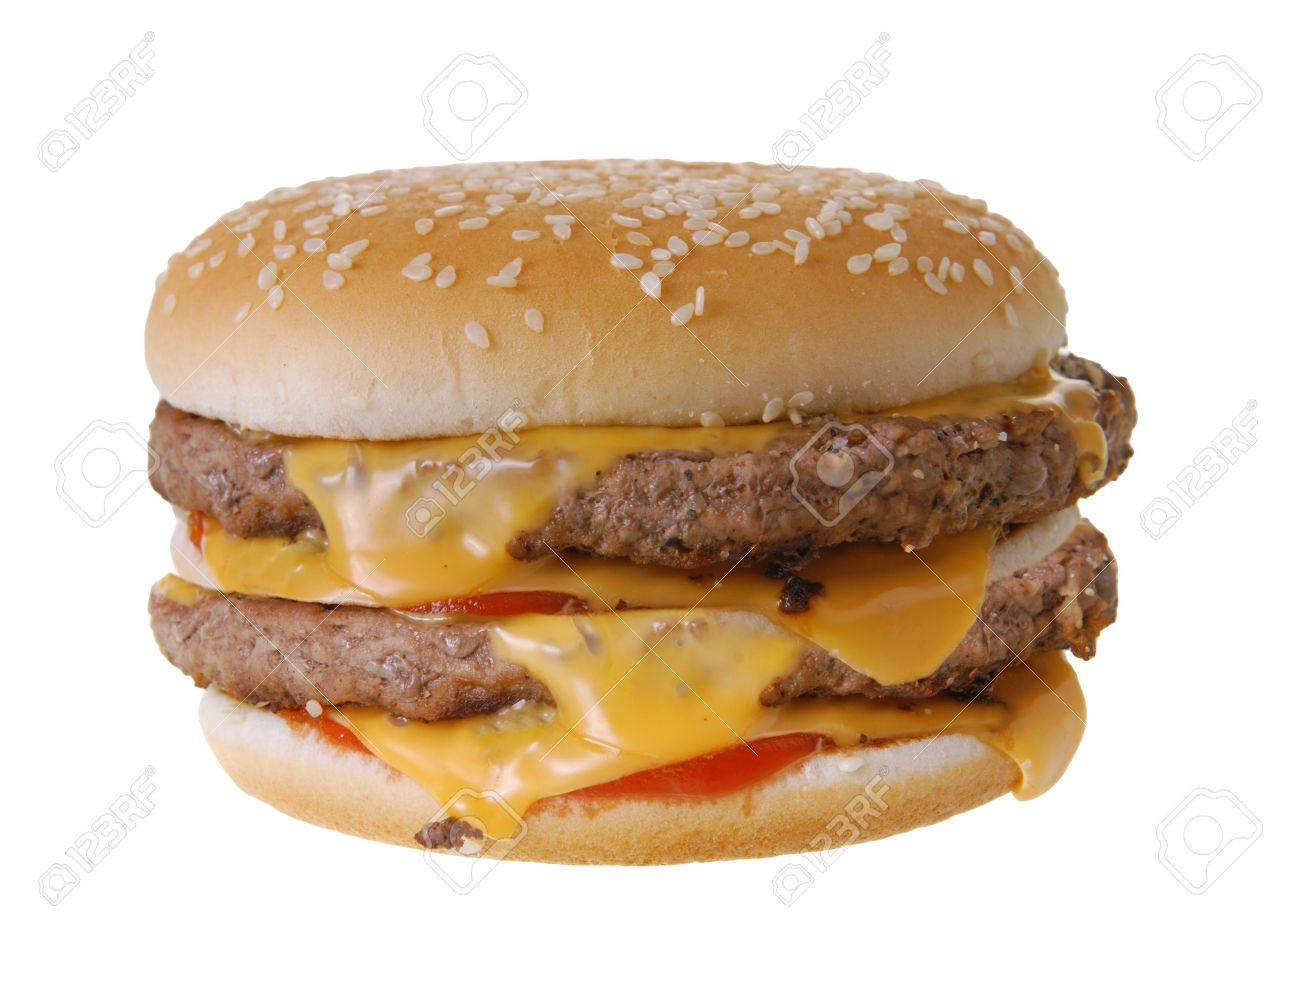 Double cheeseburger isolated on white background Stock Photo - 5793041